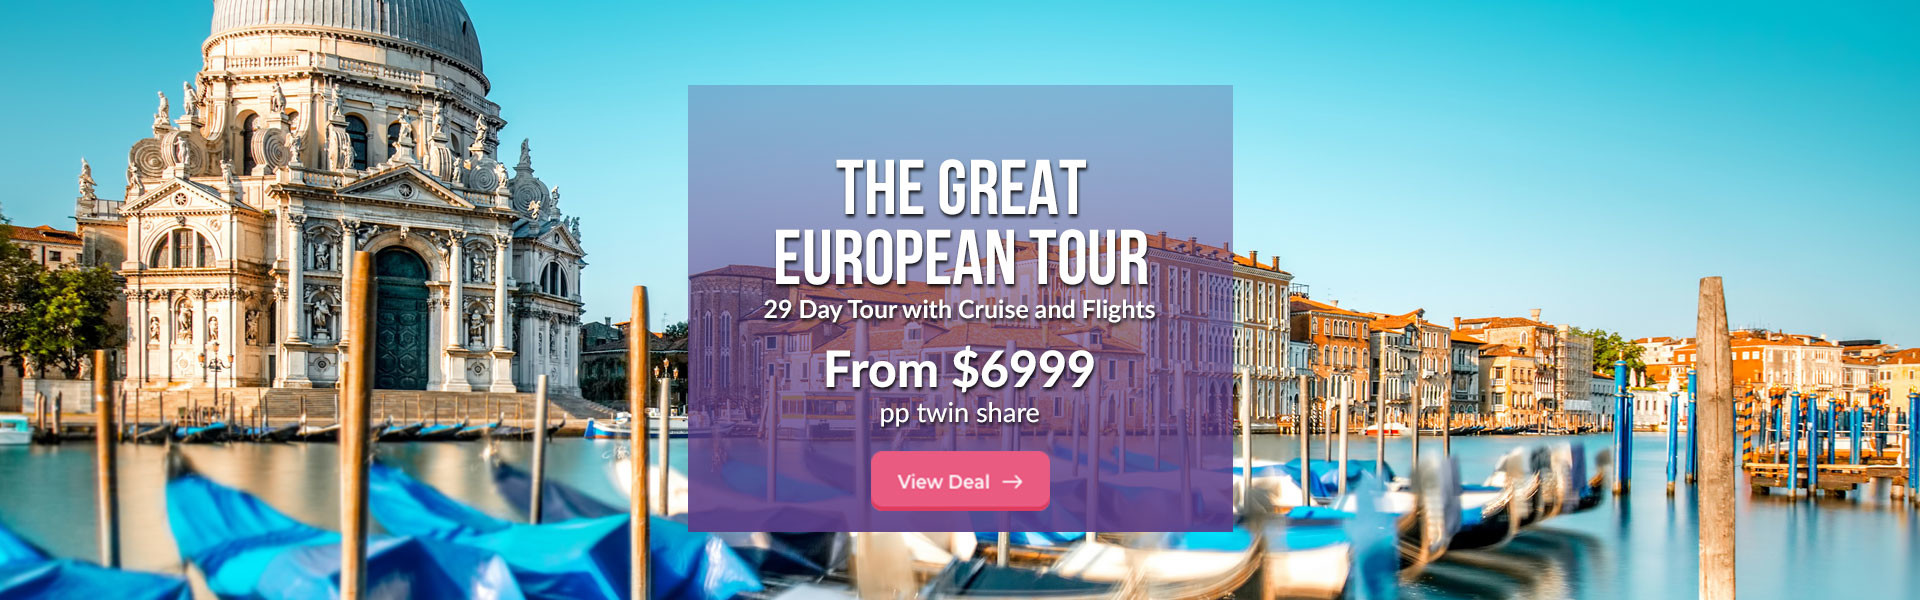 Europe Tour with Cruise